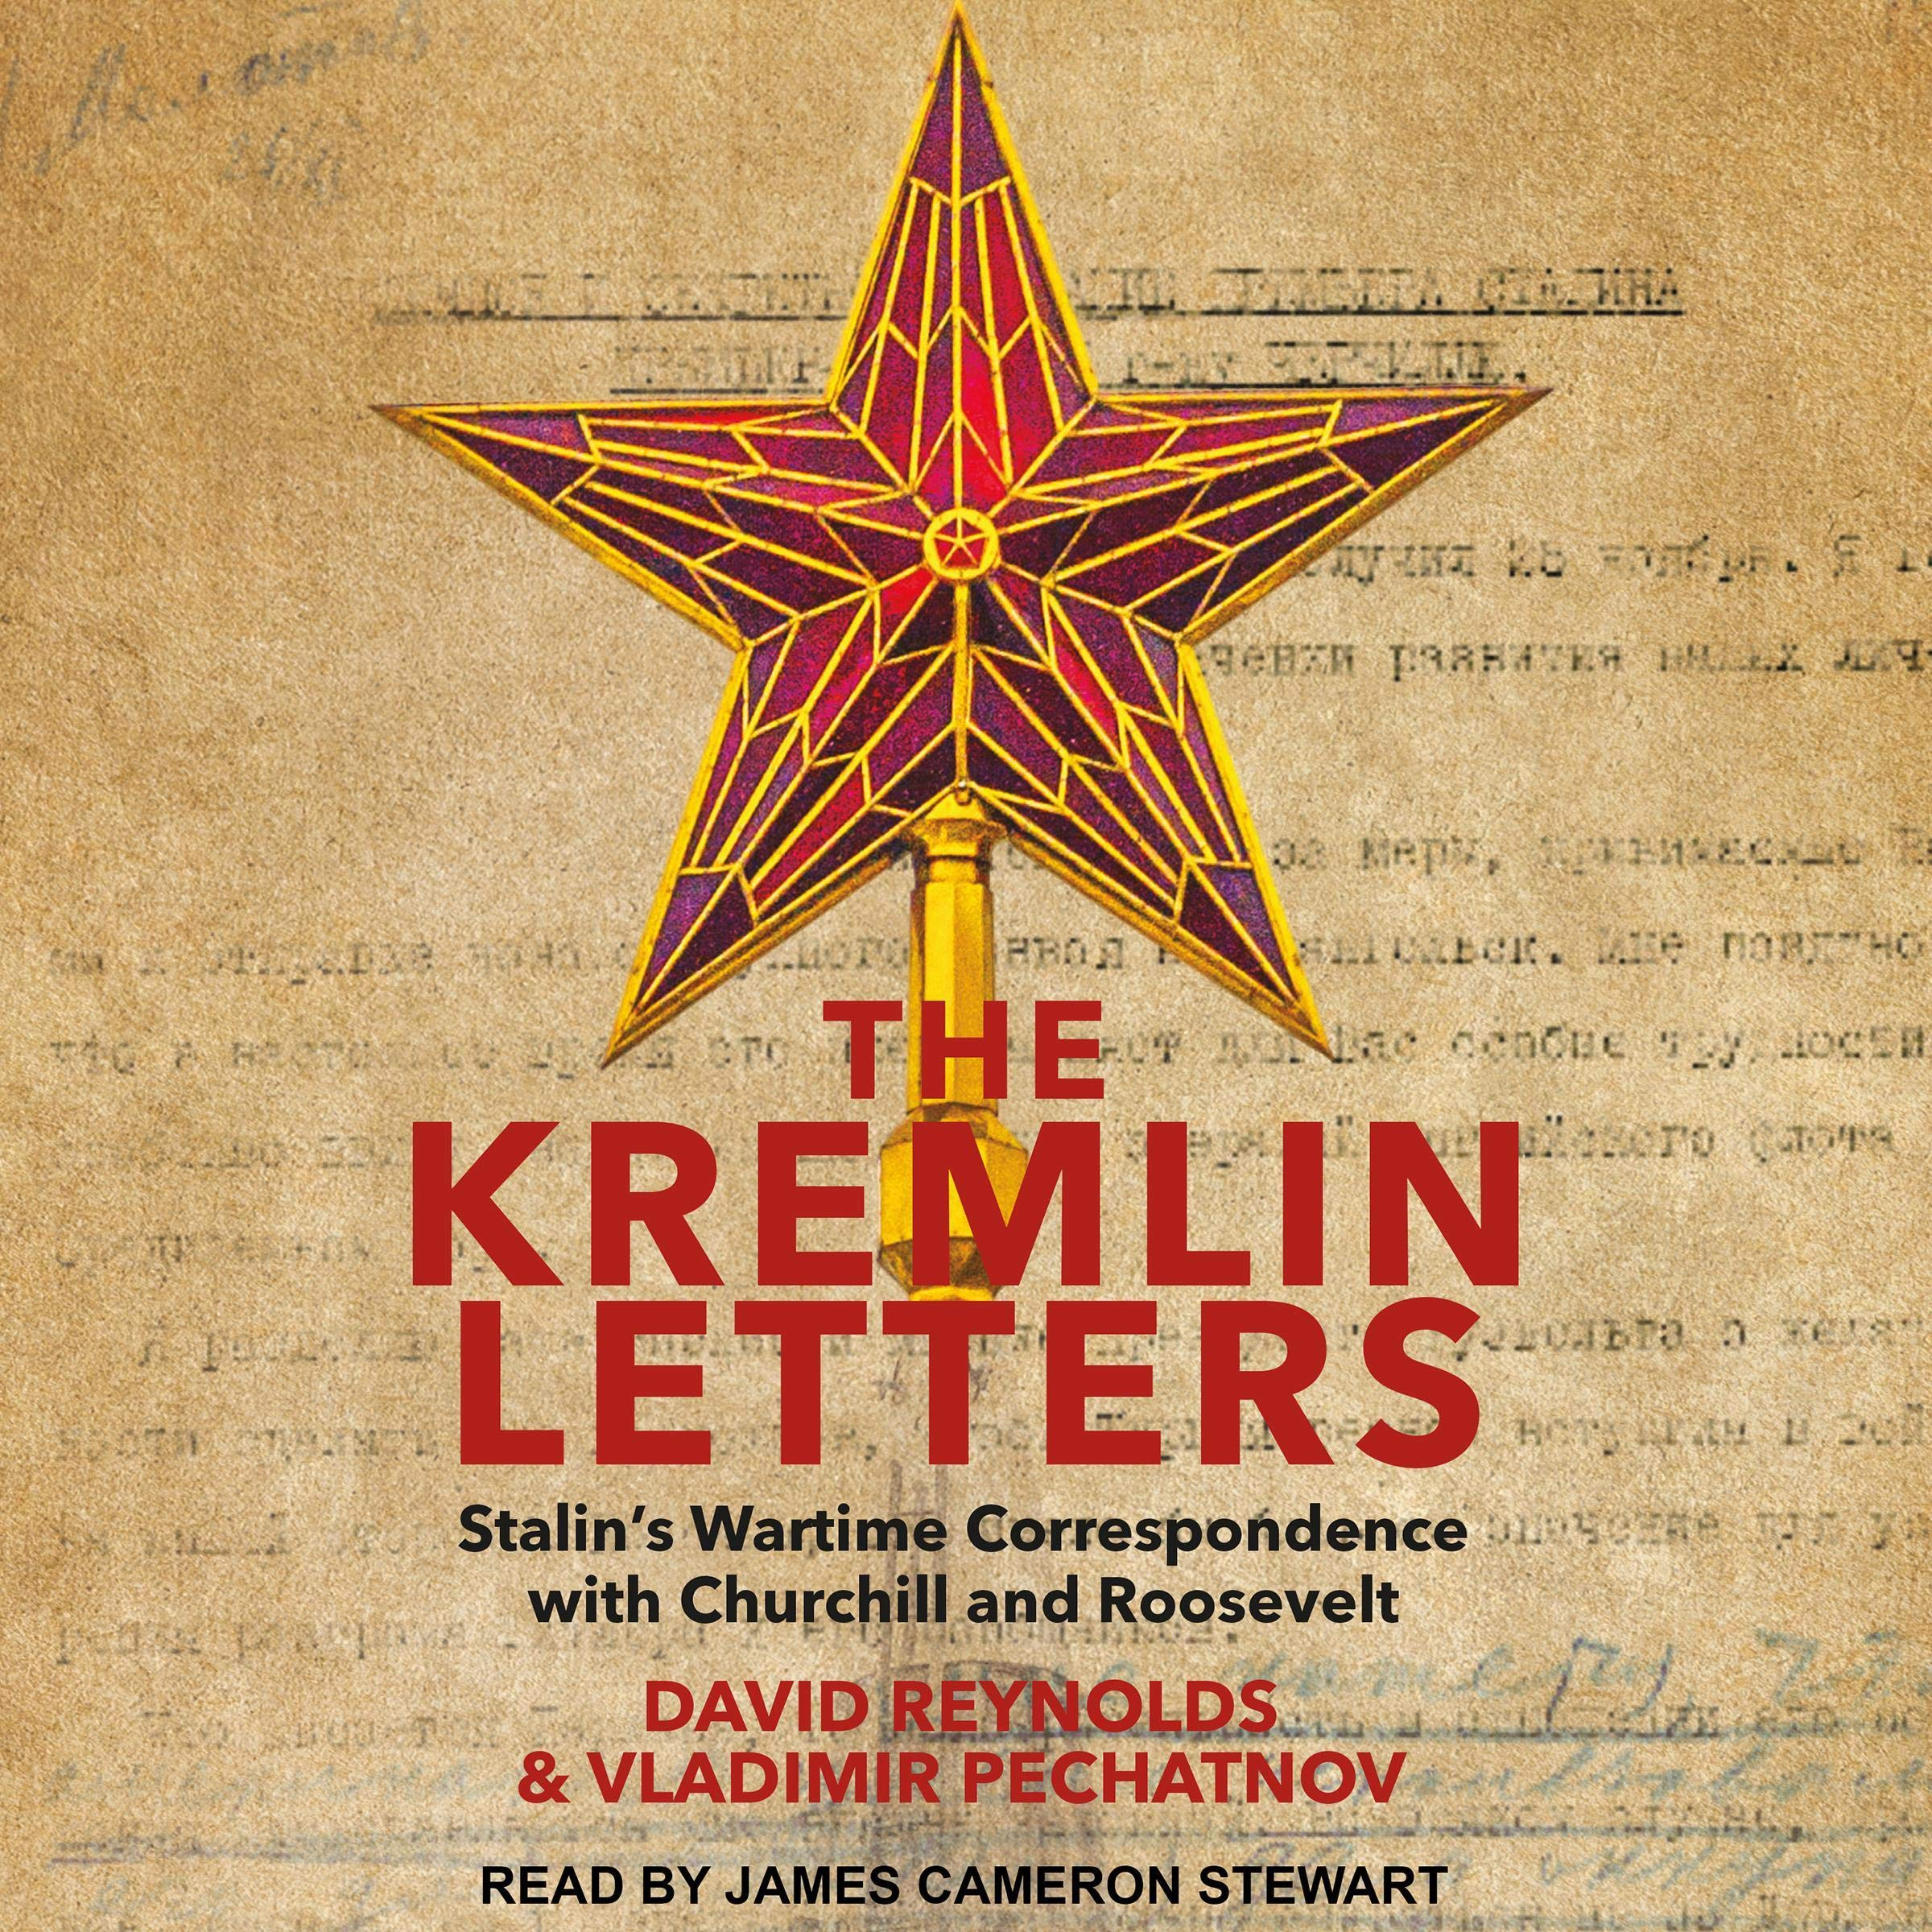 The Kremlin Letters  Stalin's Wartime Correspondence With Churchill And Roosevelt